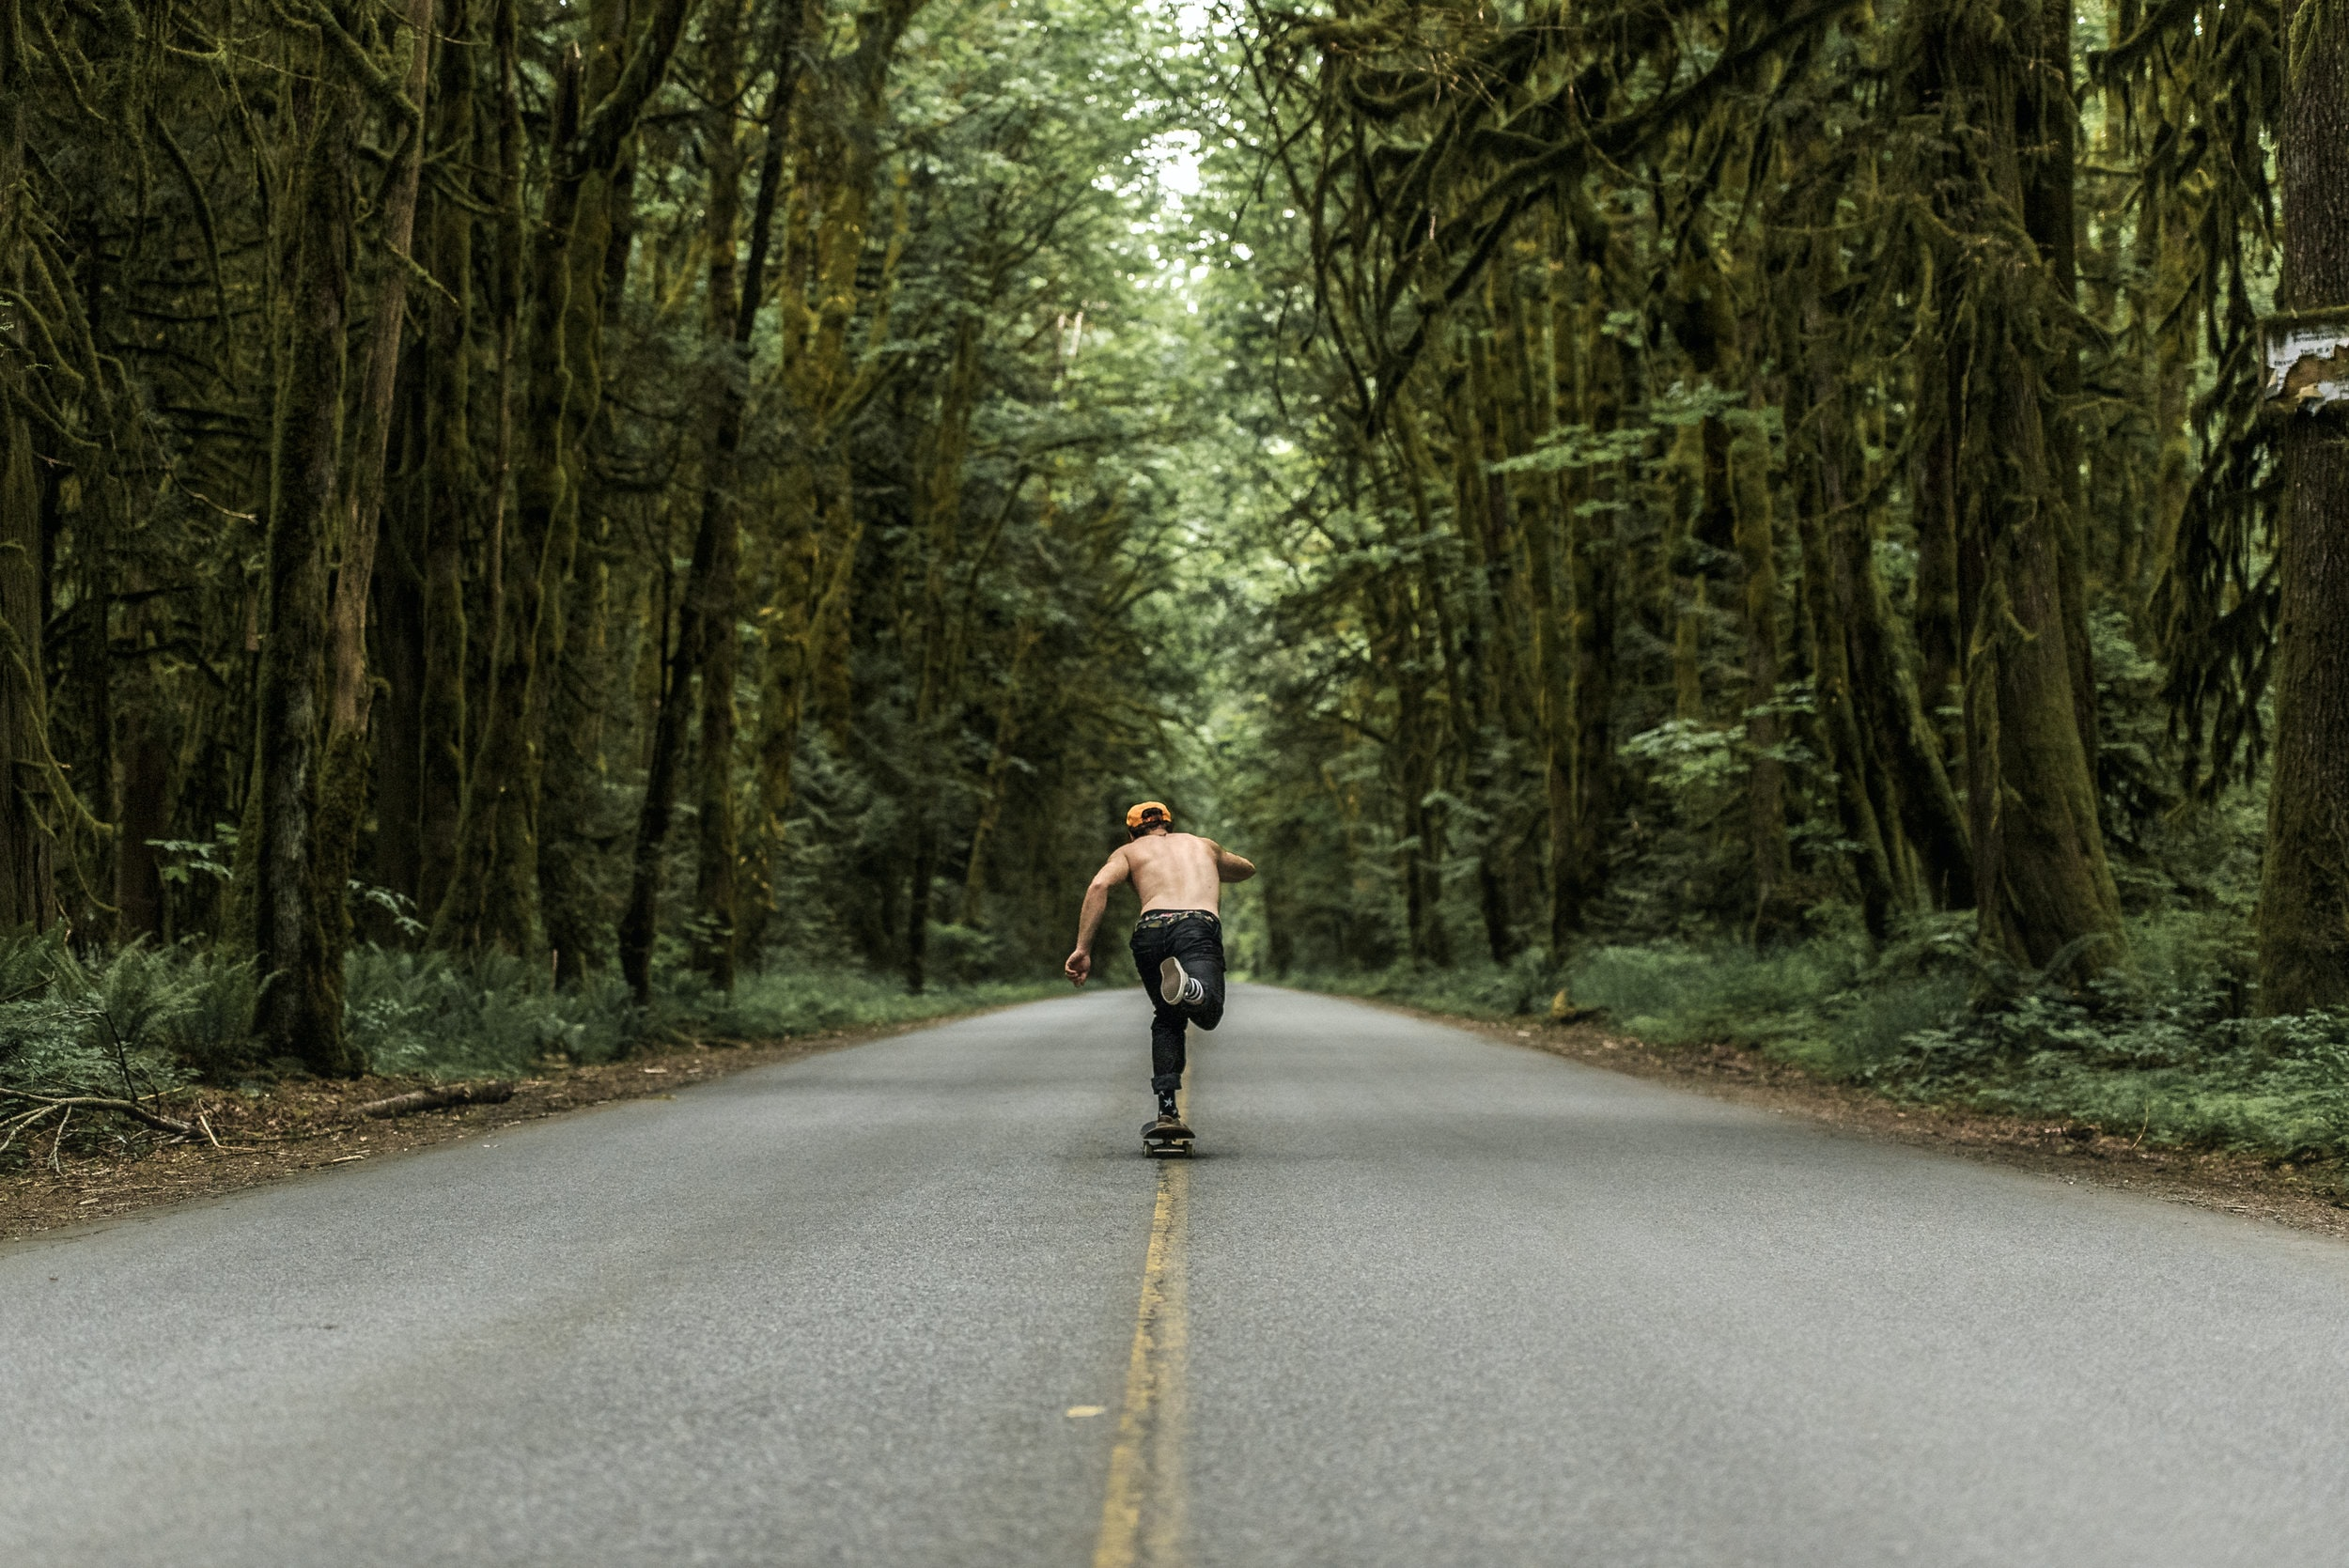 man riding skateboard on concrete road beside trees